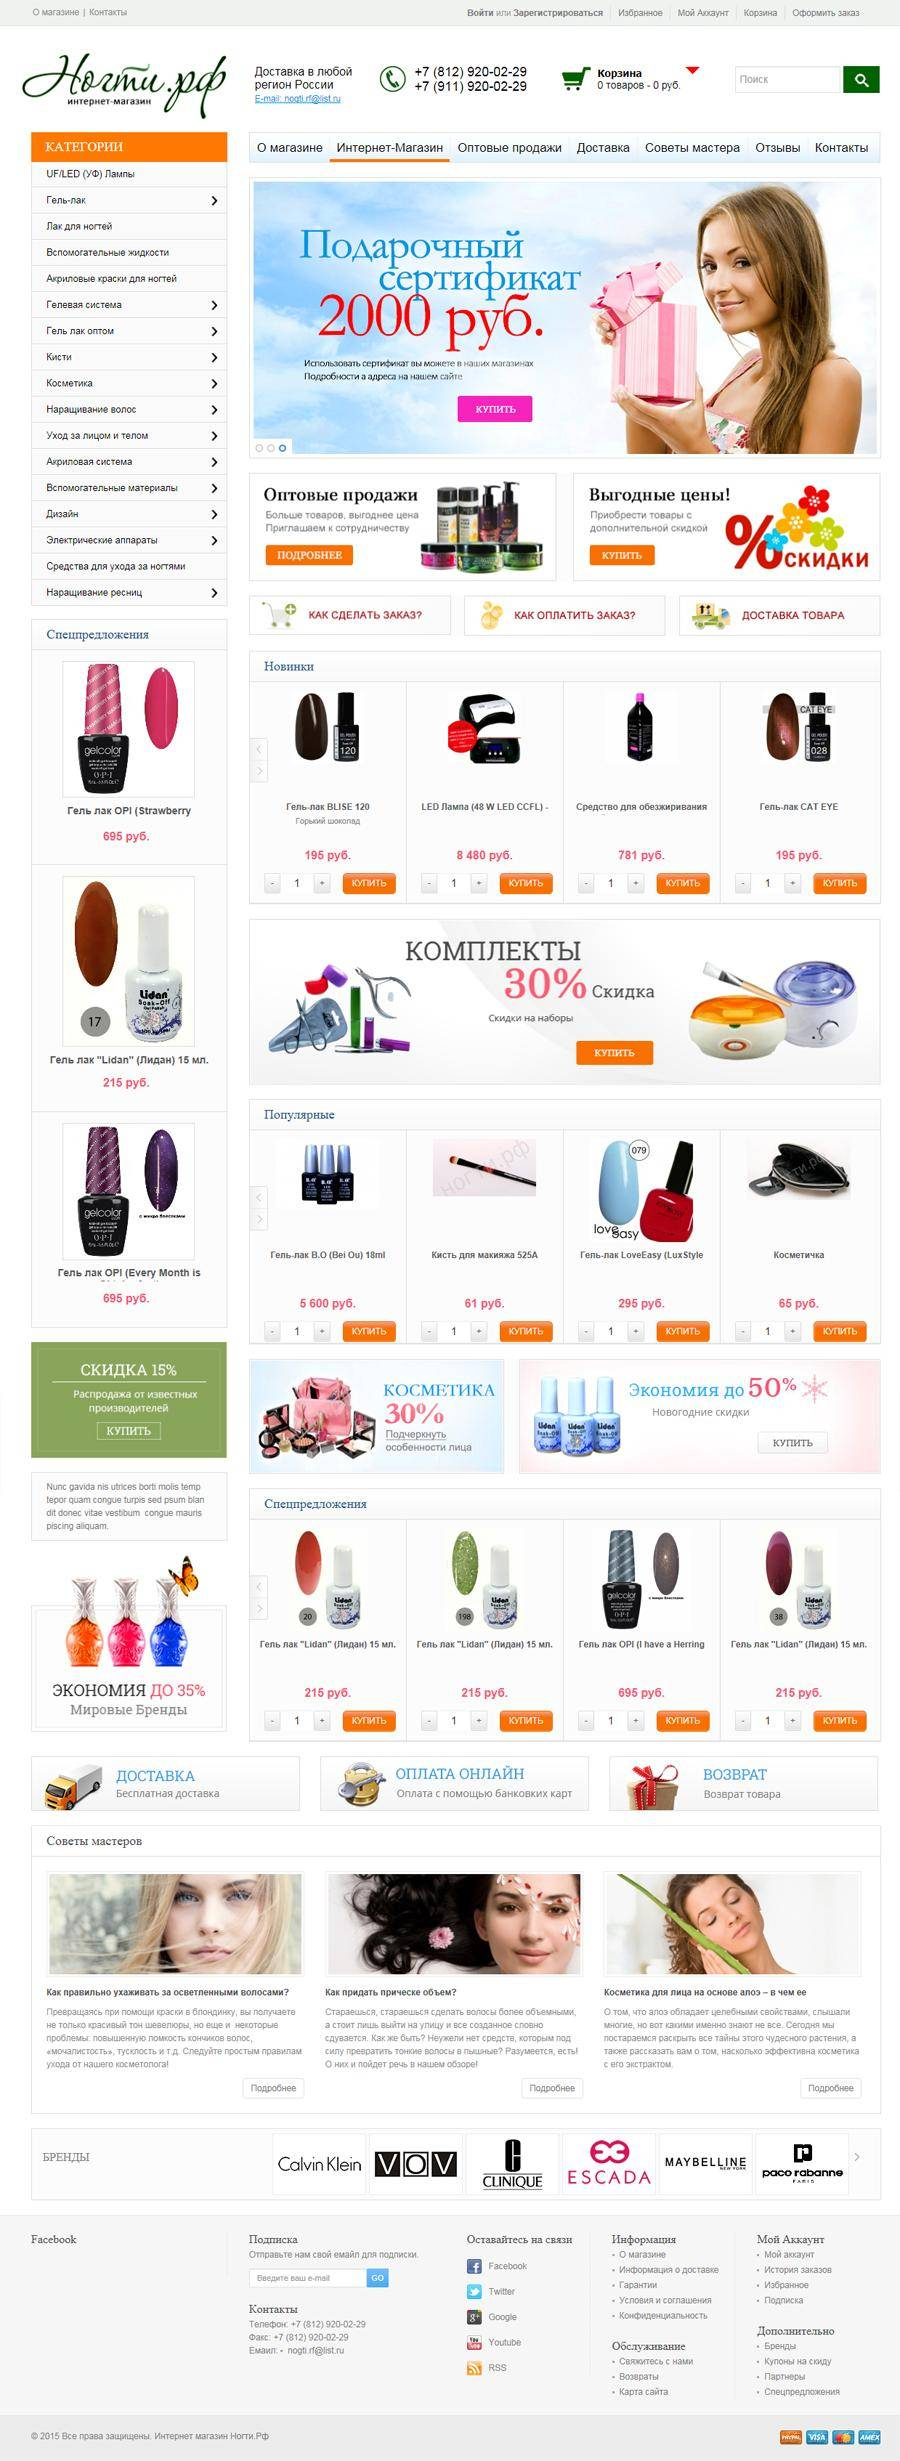 Online store of cosmetics